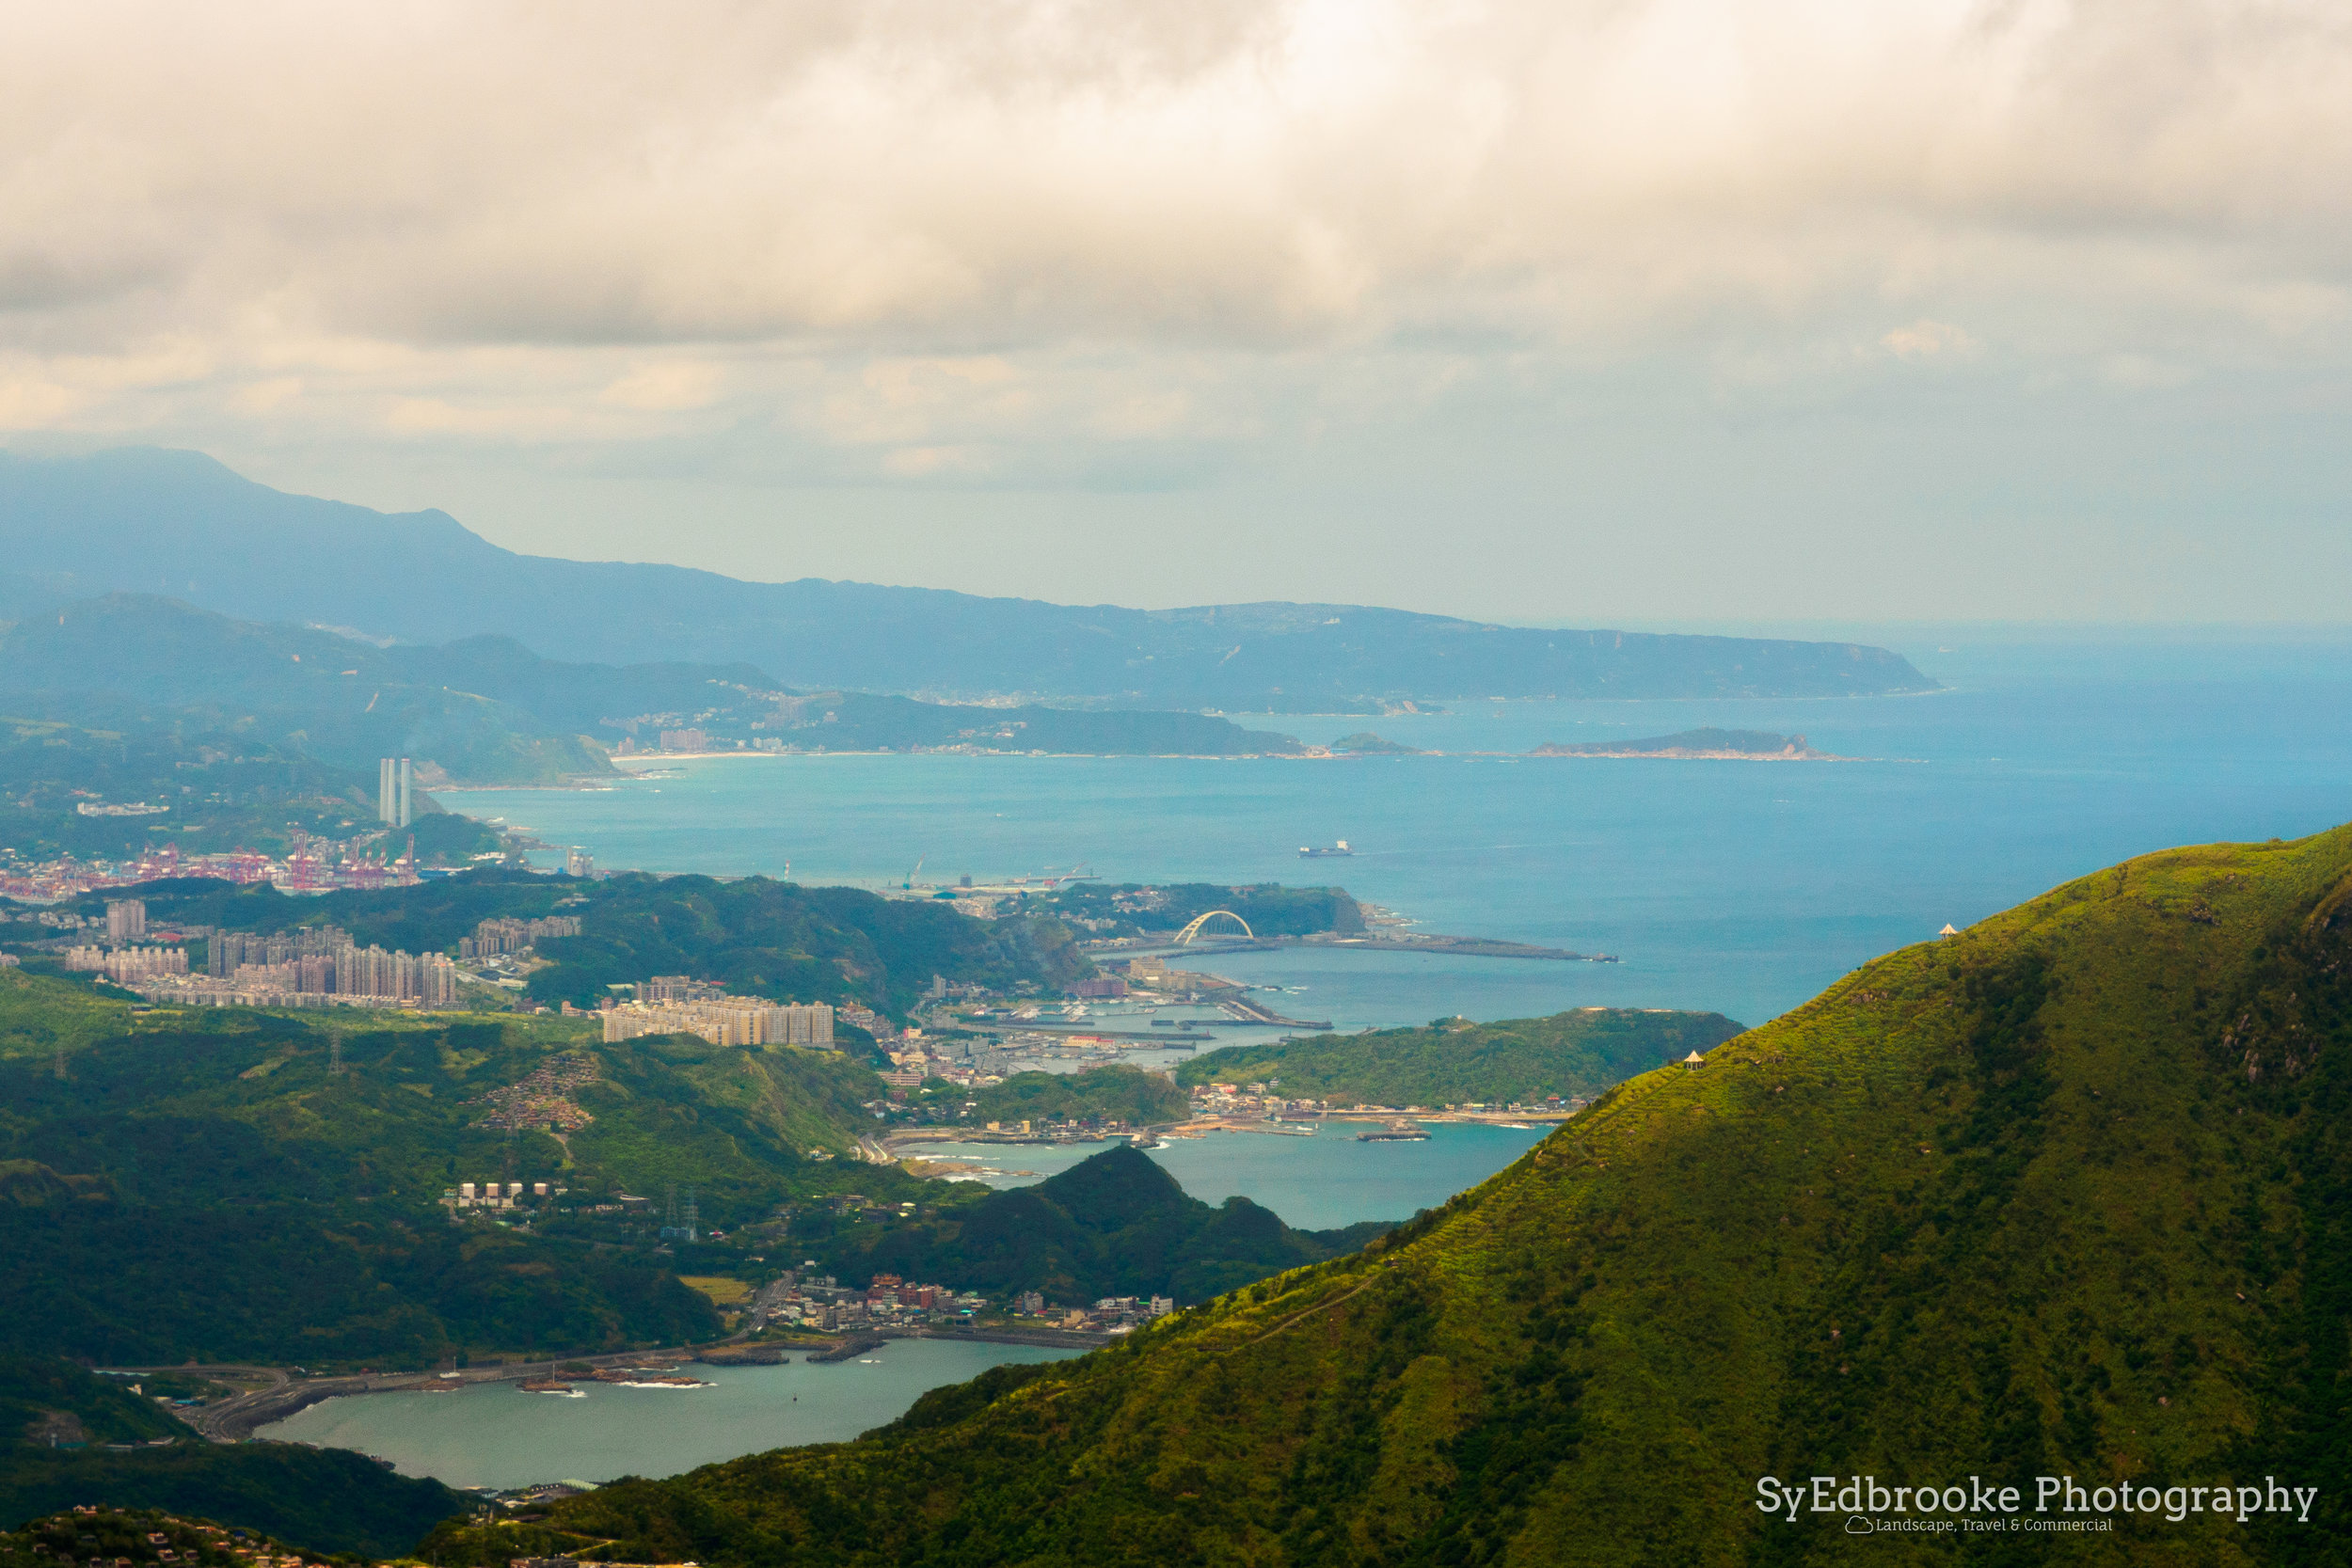 Mt. Keelung with the port and Keelung city in the background. f11, ISO 200, 1/80, 100mm